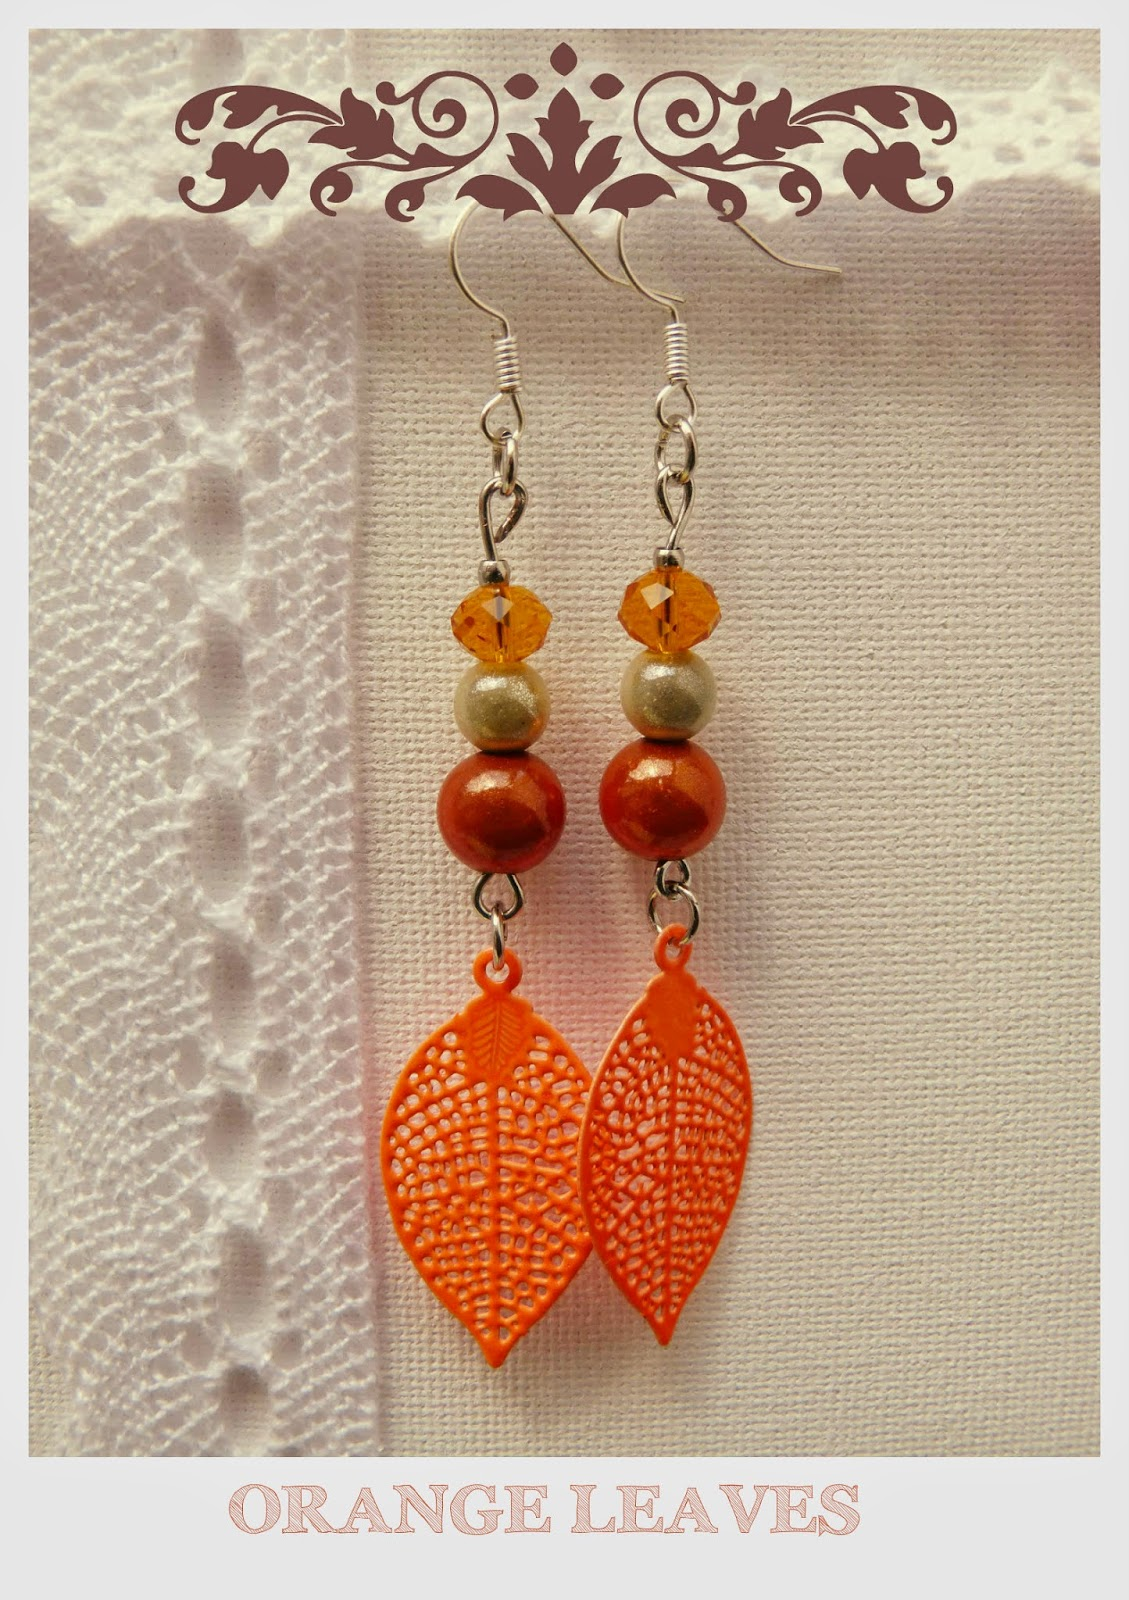 http://www.alittlemarket.com/boucles-d-oreille/fr_boucles_d_oreilles_super_flashy_orange_leaves_-9374585.html